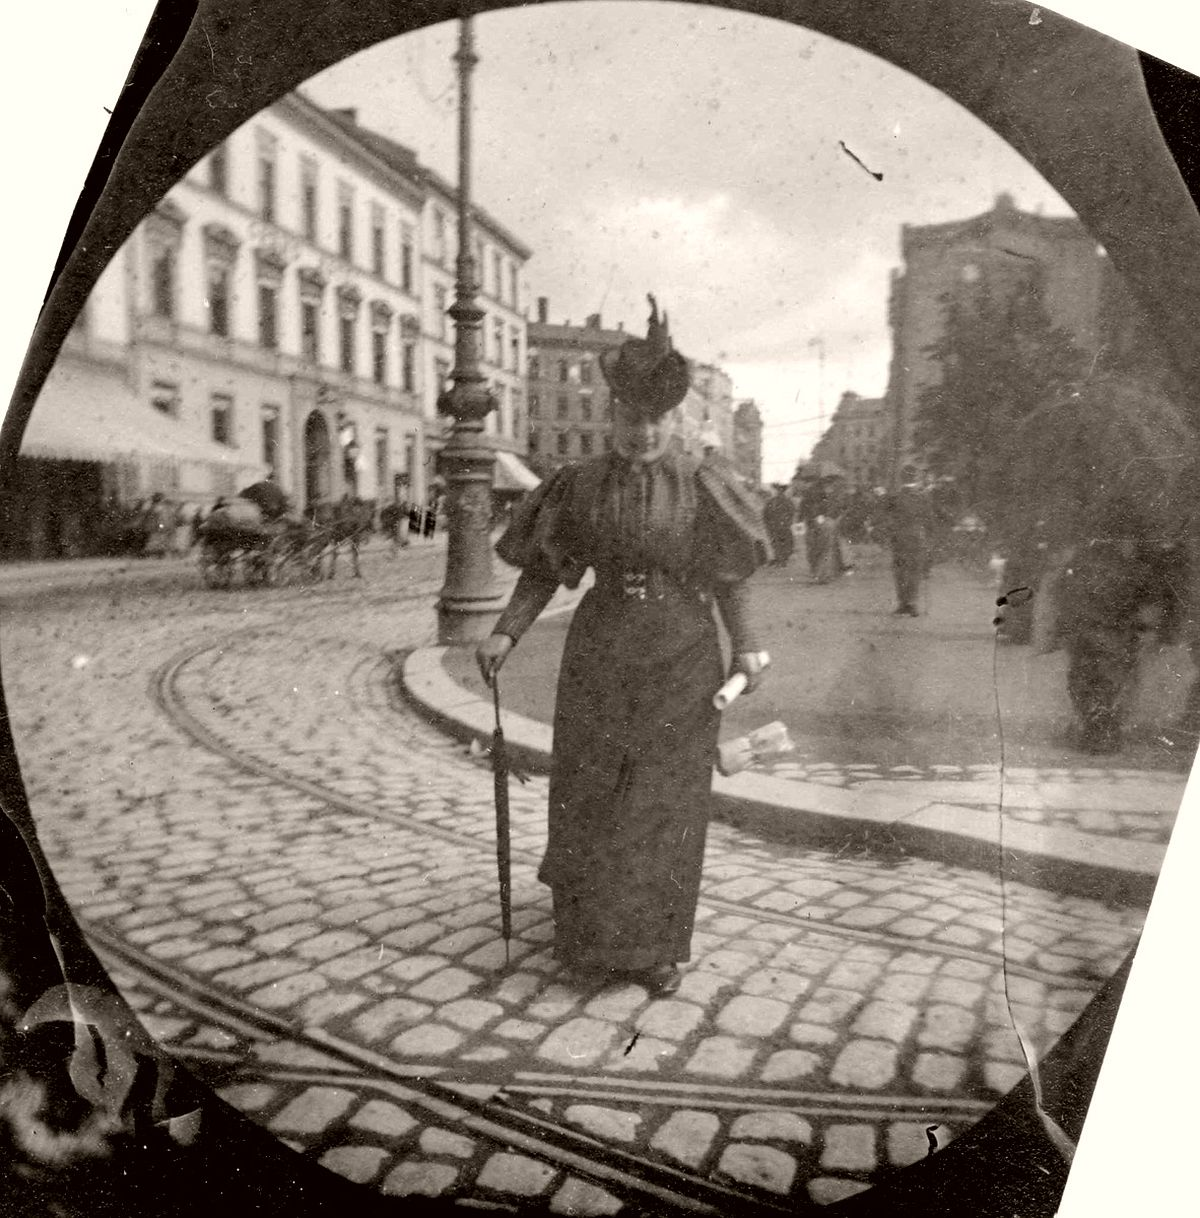 Vintage: Street Shots of Oslo by Carl Størmer (1890s)